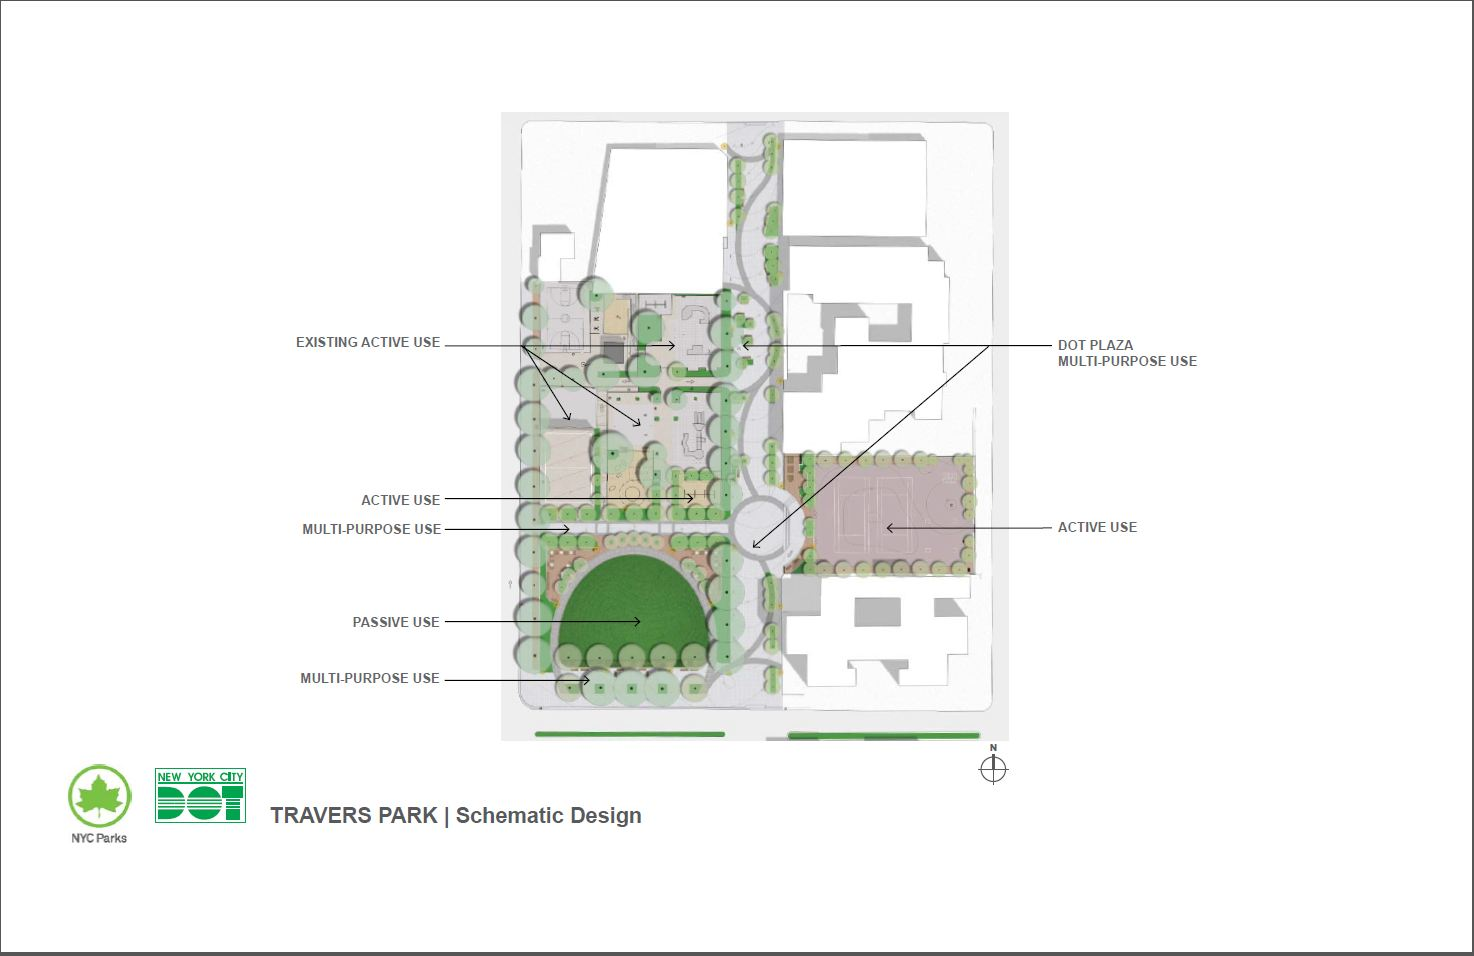 Design of Travers Park and Staunton Field Play Field Reconstruction